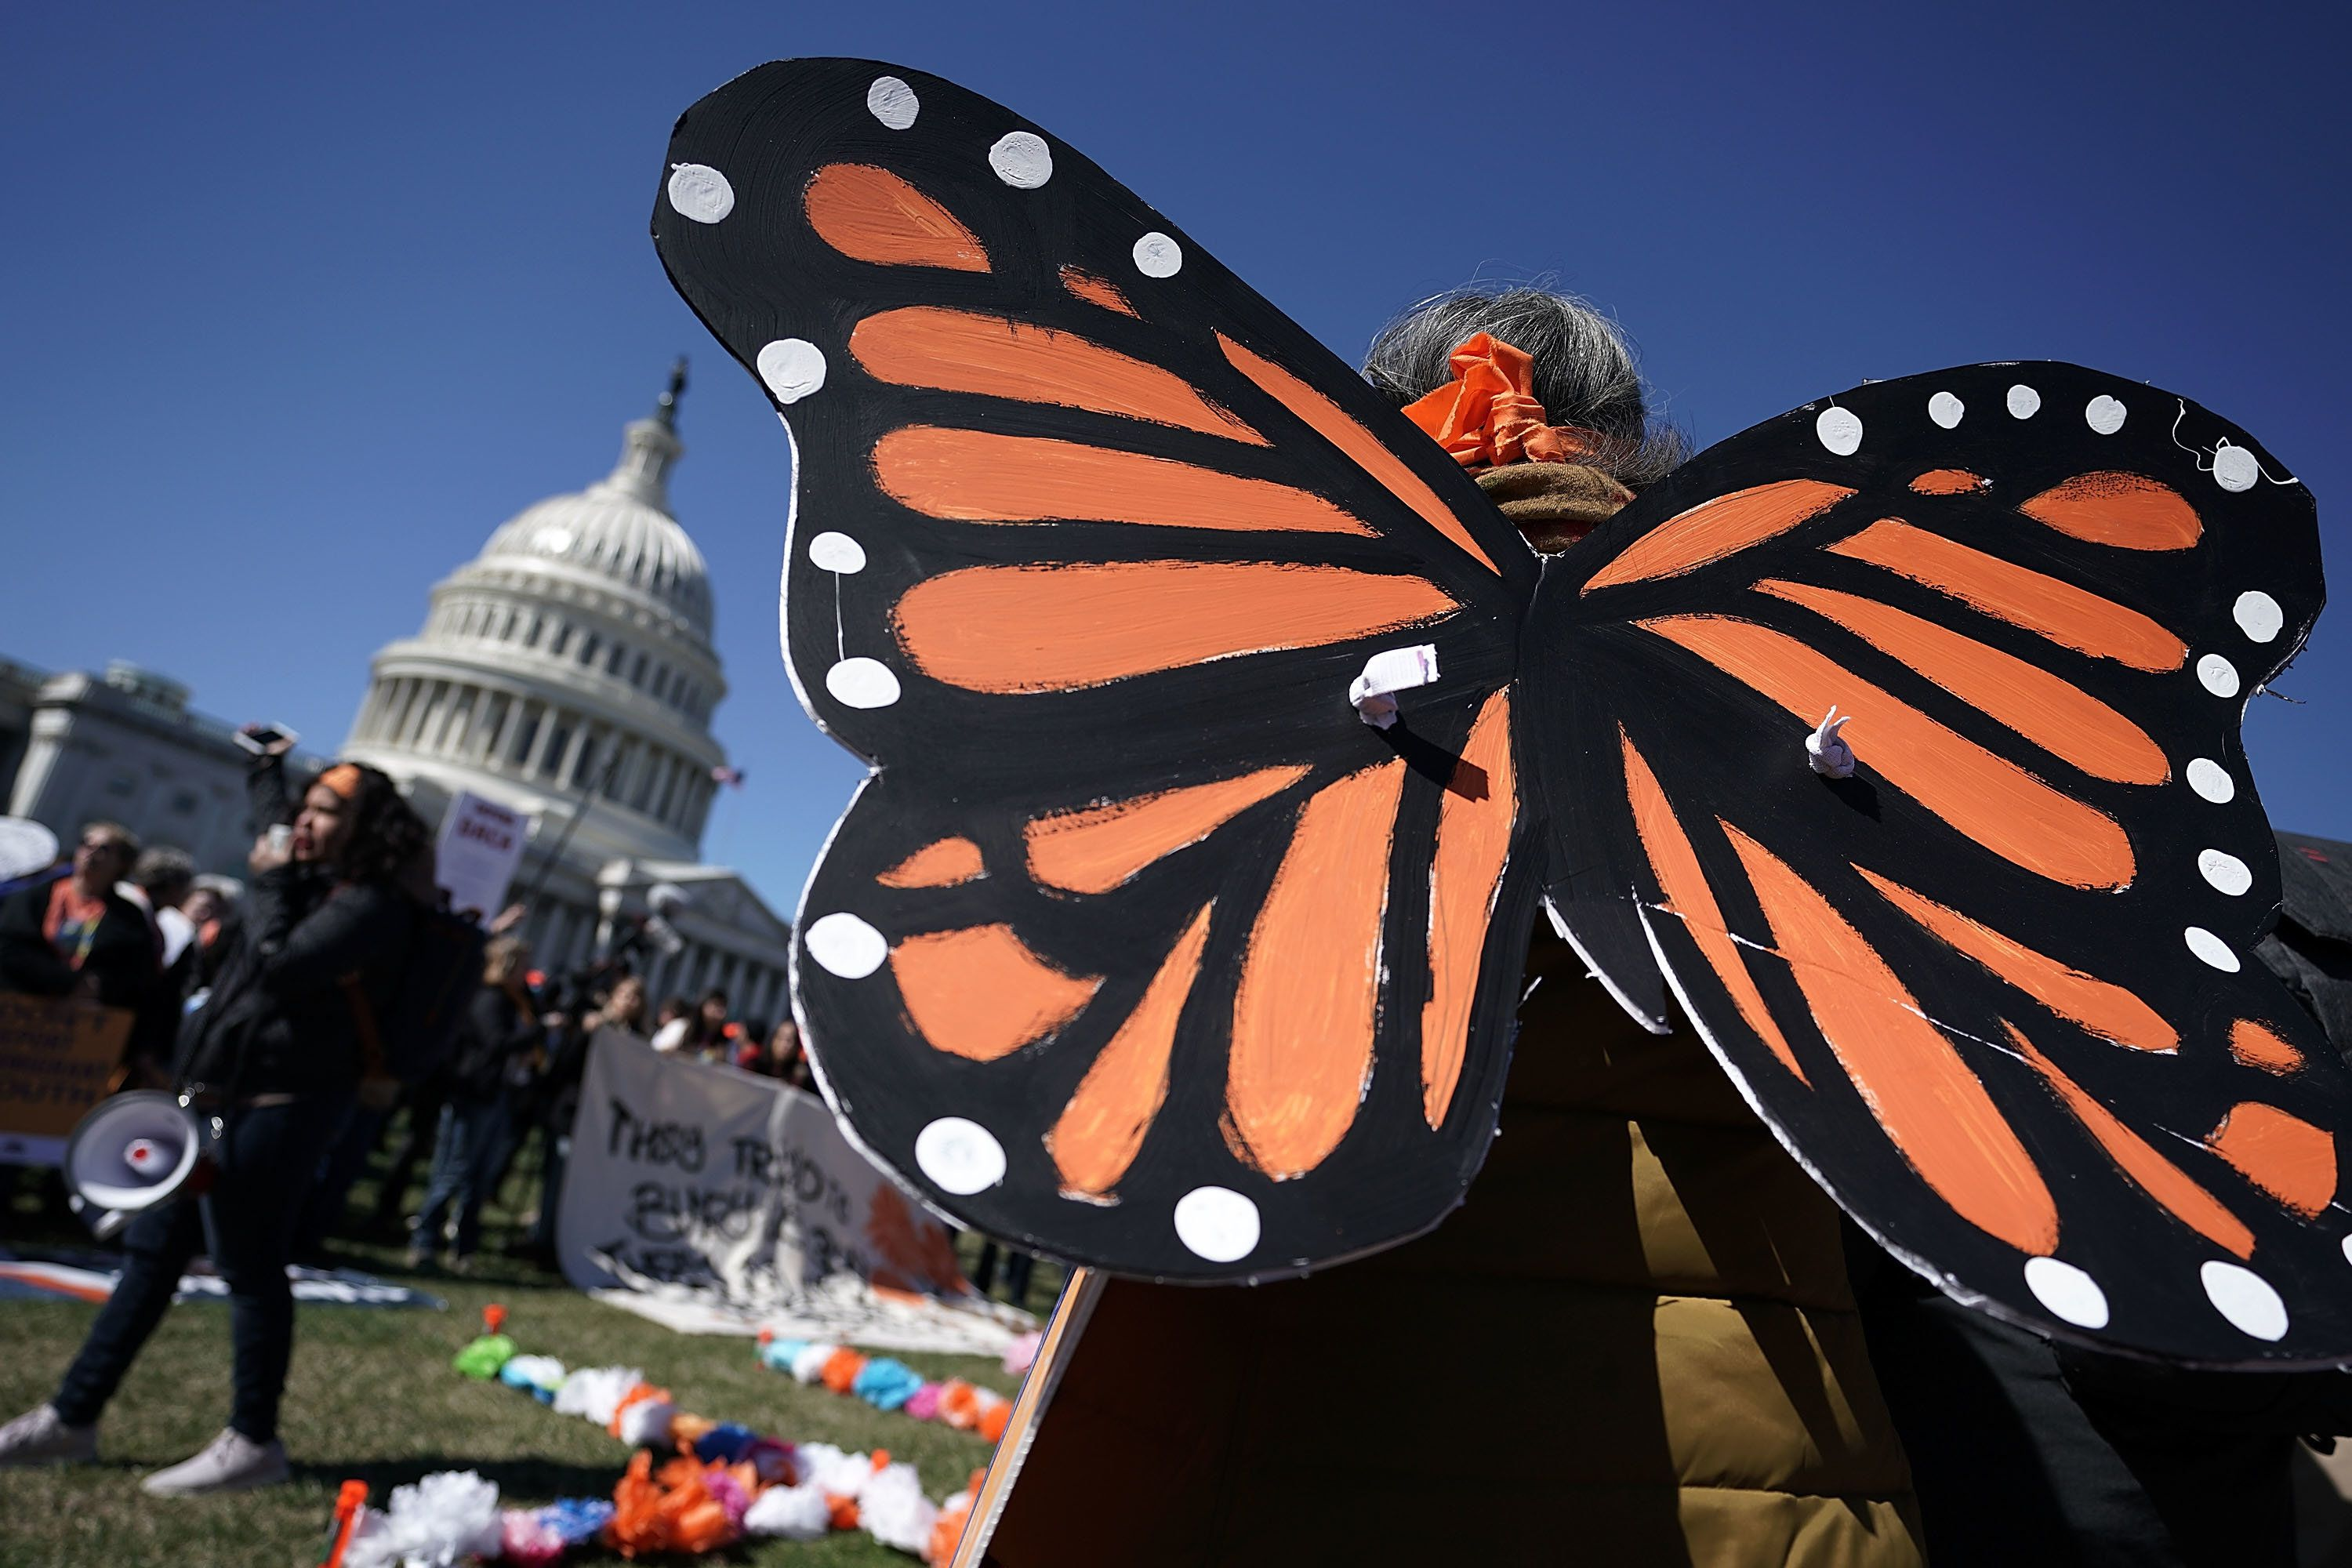 WASHINGTON, DC - MARCH 05:  An immigration activist wears custom butterfly wings during a protest March 5, 2018 on Capitol Hill in Washington, DC. Congress has not come up with a fix as today marks the deadline President Donald Trump has set to end The Deferred Action for Childhood Arrivals (DACA) program.  (Photo by Alex Wong/Getty Images)